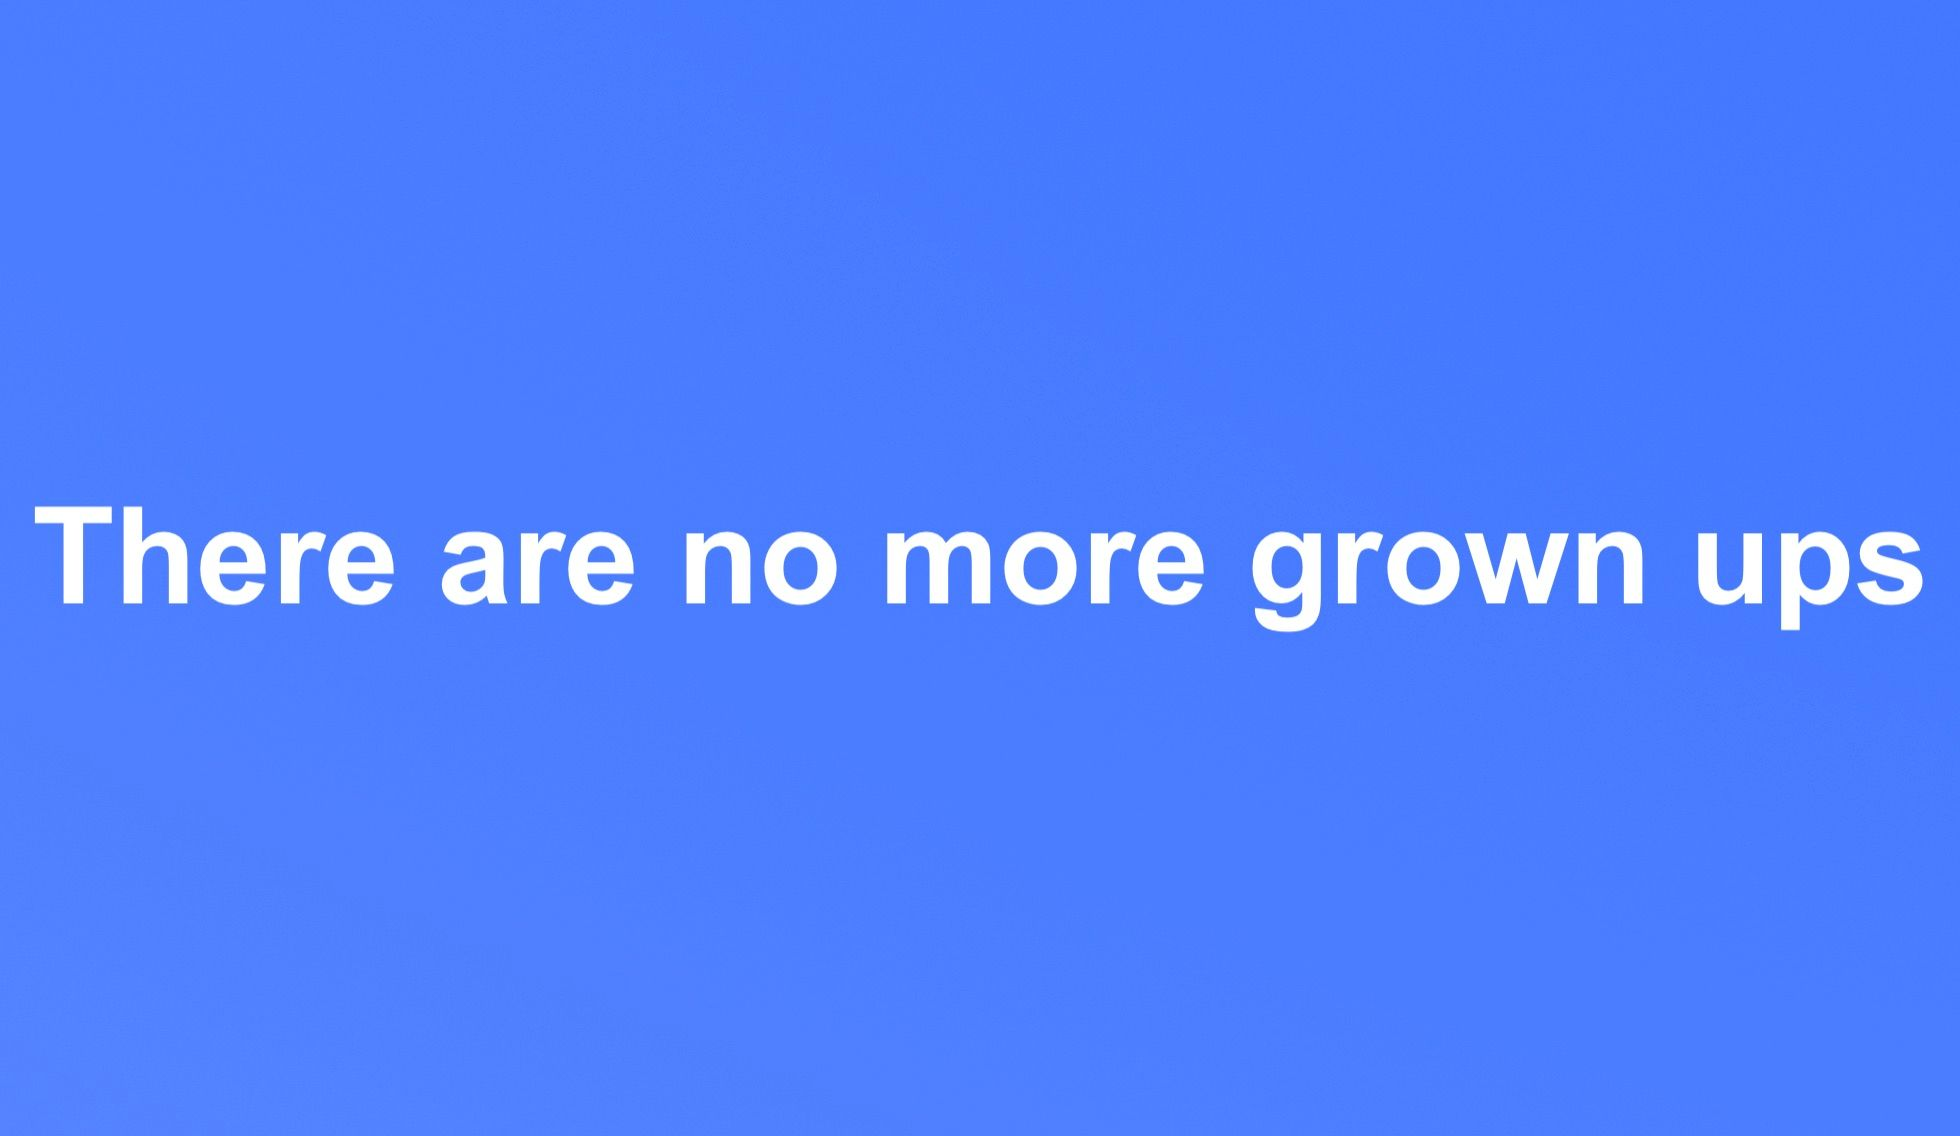 There are no more grown ups